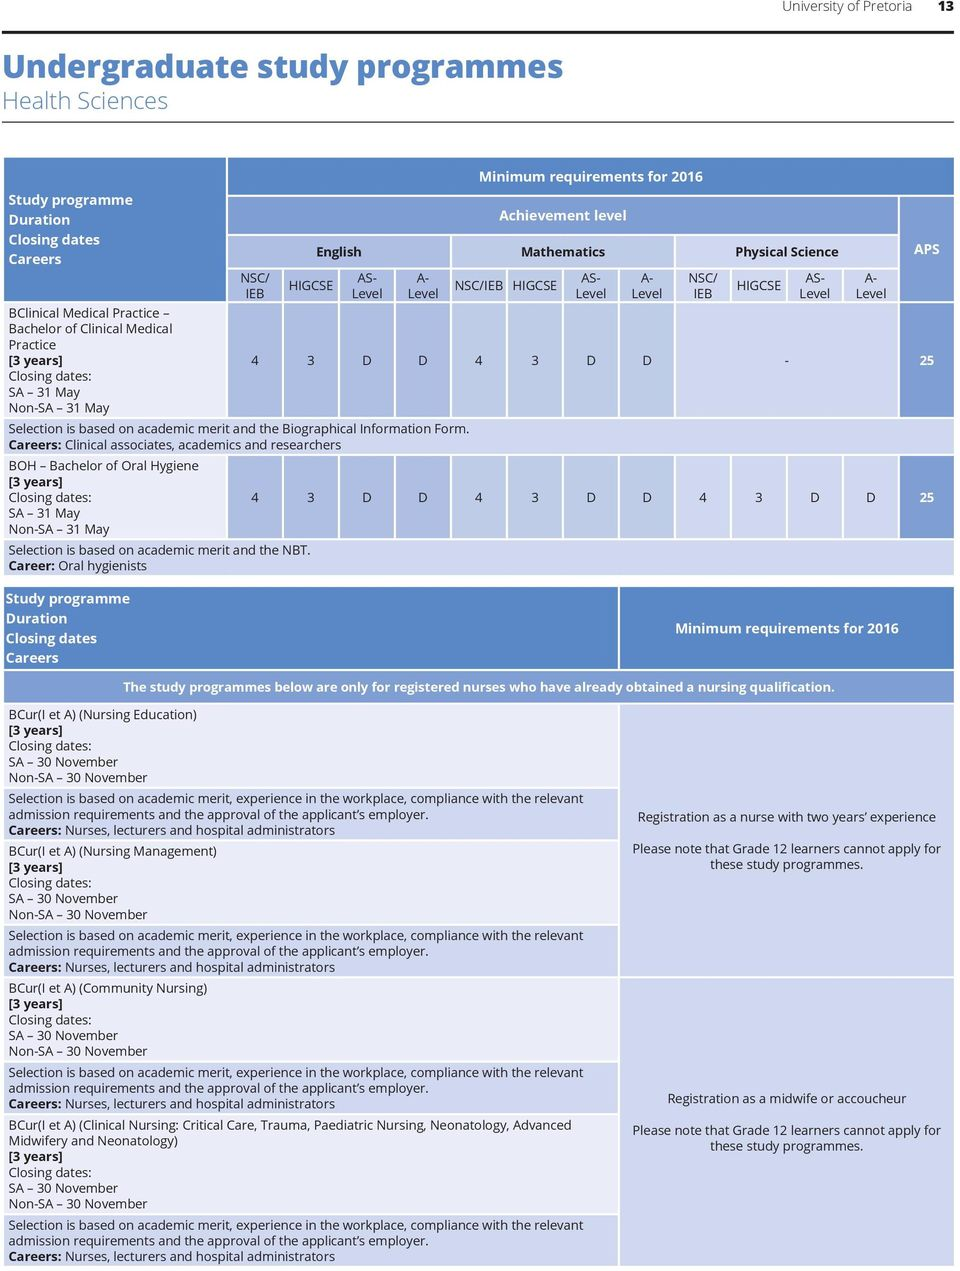 Biokinetics study requirements